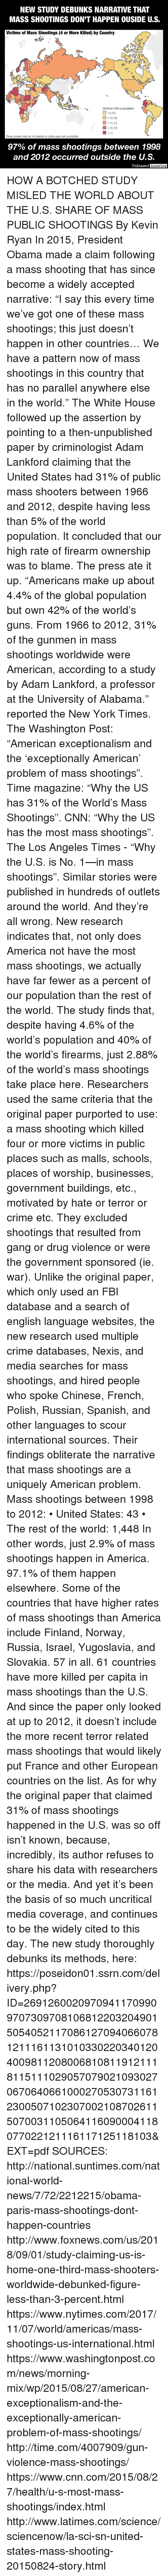 "America, cnn.com, and Crime: NEW STUDY DEBUNKS NARRATIVE THAT  MASS SHOOTINGS DON'T HAPPEN OUSIDE U.S.  Victims of Mass Shootings (4 or More Killed) by Country  Victims/100k population  0.06  0.06  >=0.15  0.33  >=1  Gray areas had no incidents or data was not available  97% of mass shootings between 1998  and 2012 occurred outside the U.S.  Unbiased America HOW A BOTCHED STUDY MISLED THE WORLD ABOUT THE U.S. SHARE OF MASS PUBLIC SHOOTINGS By Kevin Ryan  In 2015, President Obama made a claim following a mass shooting that has since become a widely accepted narrative:  ""I say this every time we've got one of these mass shootings; this just doesn't happen in other countries… We have a pattern now of mass shootings in this country that has no parallel anywhere else in the world.""  The White House followed up the assertion by pointing to a then-unpublished paper by criminologist Adam Lankford claiming that the United States had 31% of public mass shooters between 1966 and 2012, despite having less than 5% of the world population.  It concluded that our high rate of firearm ownership was to blame.  The press ate it up.  ""Americans make up about 4.4% of the global population but own 42% of the world's guns. From 1966 to 2012, 31% of the gunmen in mass shootings worldwide were American, according to a study by Adam Lankford, a professor at the University of Alabama."" reported the New York Times.  The Washington Post: ""American exceptionalism and the 'exceptionally American' problem of mass shootings"".  Time magazine: ""Why the US has 31% of the World's Mass Shootings"".  CNN: ""Why the US has the most mass shootings"".  The Los Angeles Times - ""Why the U.S. is No. 1—in mass shootings"".  Similar stories were published in hundreds of outlets around the world.  And they're all wrong.  New research indicates that, not only does America not have the most mass shootings, we actually have far fewer as a percent of our population than the rest of the world.  The study finds that, despite having 4.6% of the world's population and 40% of the world's firearms, just 2.88% of the world's mass shootings take place here.  Researchers used the same criteria that the original paper purported to use: a mass shooting which killed four or more victims in public places such as malls, schools, places of worship, businesses, government buildings, etc., motivated by hate or terror or crime etc.  They excluded shootings that resulted from gang or drug violence or were the government sponsored (ie. war).  Unlike the original paper, which only used an FBI database and a search of english language websites, the new research used multiple crime databases, Nexis, and media searches for mass shootings, and hired people who spoke Chinese, French, Polish, Russian, Spanish, and other languages to scour international sources.  Their findings obliterate the narrative that mass shootings are a uniquely American problem.    Mass shootings between 1998 to 2012: • United States: 43 • The rest of the world: 1,448  In other words, just 2.9% of mass shootings happen in America.  97.1% of them happen elsewhere.  Some of the countries that have higher rates of mass shootings than America include Finland, Norway, Russia, Israel, Yugoslavia, and Slovakia.  57 in all.  61 countries have more killed per capita in mass shootings than the U.S.  And since the paper only looked at up to 2012, it doesn't include the more recent terror related mass shootings that would likely put France and other European countries on the list.  As for why the original paper that claimed 31% of mass shootings happened in the U.S. was so off isn't known, because, incredibly, its author refuses to share his data with researchers or the media.  And yet it's been the basis of so much uncritical media coverage, and continues to be the widely cited to this day.  The new study thoroughly debunks its methods, here: https://poseidon01.ssrn.com/delivery.php?ID=269126002097094117099097073097081068122032049015054052117086127094066078121116113101033022034012040098112080068108119121118115111029057079021093027067064066100027053073116123005071023070021087026115070031105064116090004118077022121116117125118103&EXT=pdf   SOURCES: http://national.suntimes.com/national-world-news/7/72/2212215/obama-paris-mass-shootings-dont-happen-countries http://www.foxnews.com/us/2018/09/01/study-claiming-us-is-home-one-third-mass-shooters-worldwide-debunked-figure-less-than-3-percent.html https://www.nytimes.com/2017/11/07/world/americas/mass-shootings-us-international.html https://www.washingtonpost.com/news/morning-mix/wp/2015/08/27/american-exceptionalism-and-the-exceptionally-american-problem-of-mass-shootings/ http://time.com/4007909/gun-violence-mass-shootings/ https://www.cnn.com/2015/08/27/health/u-s-most-mass-shootings/index.html http://www.latimes.com/science/sciencenow/la-sci-sn-united-states-mass-shooting-20150824-story.html"